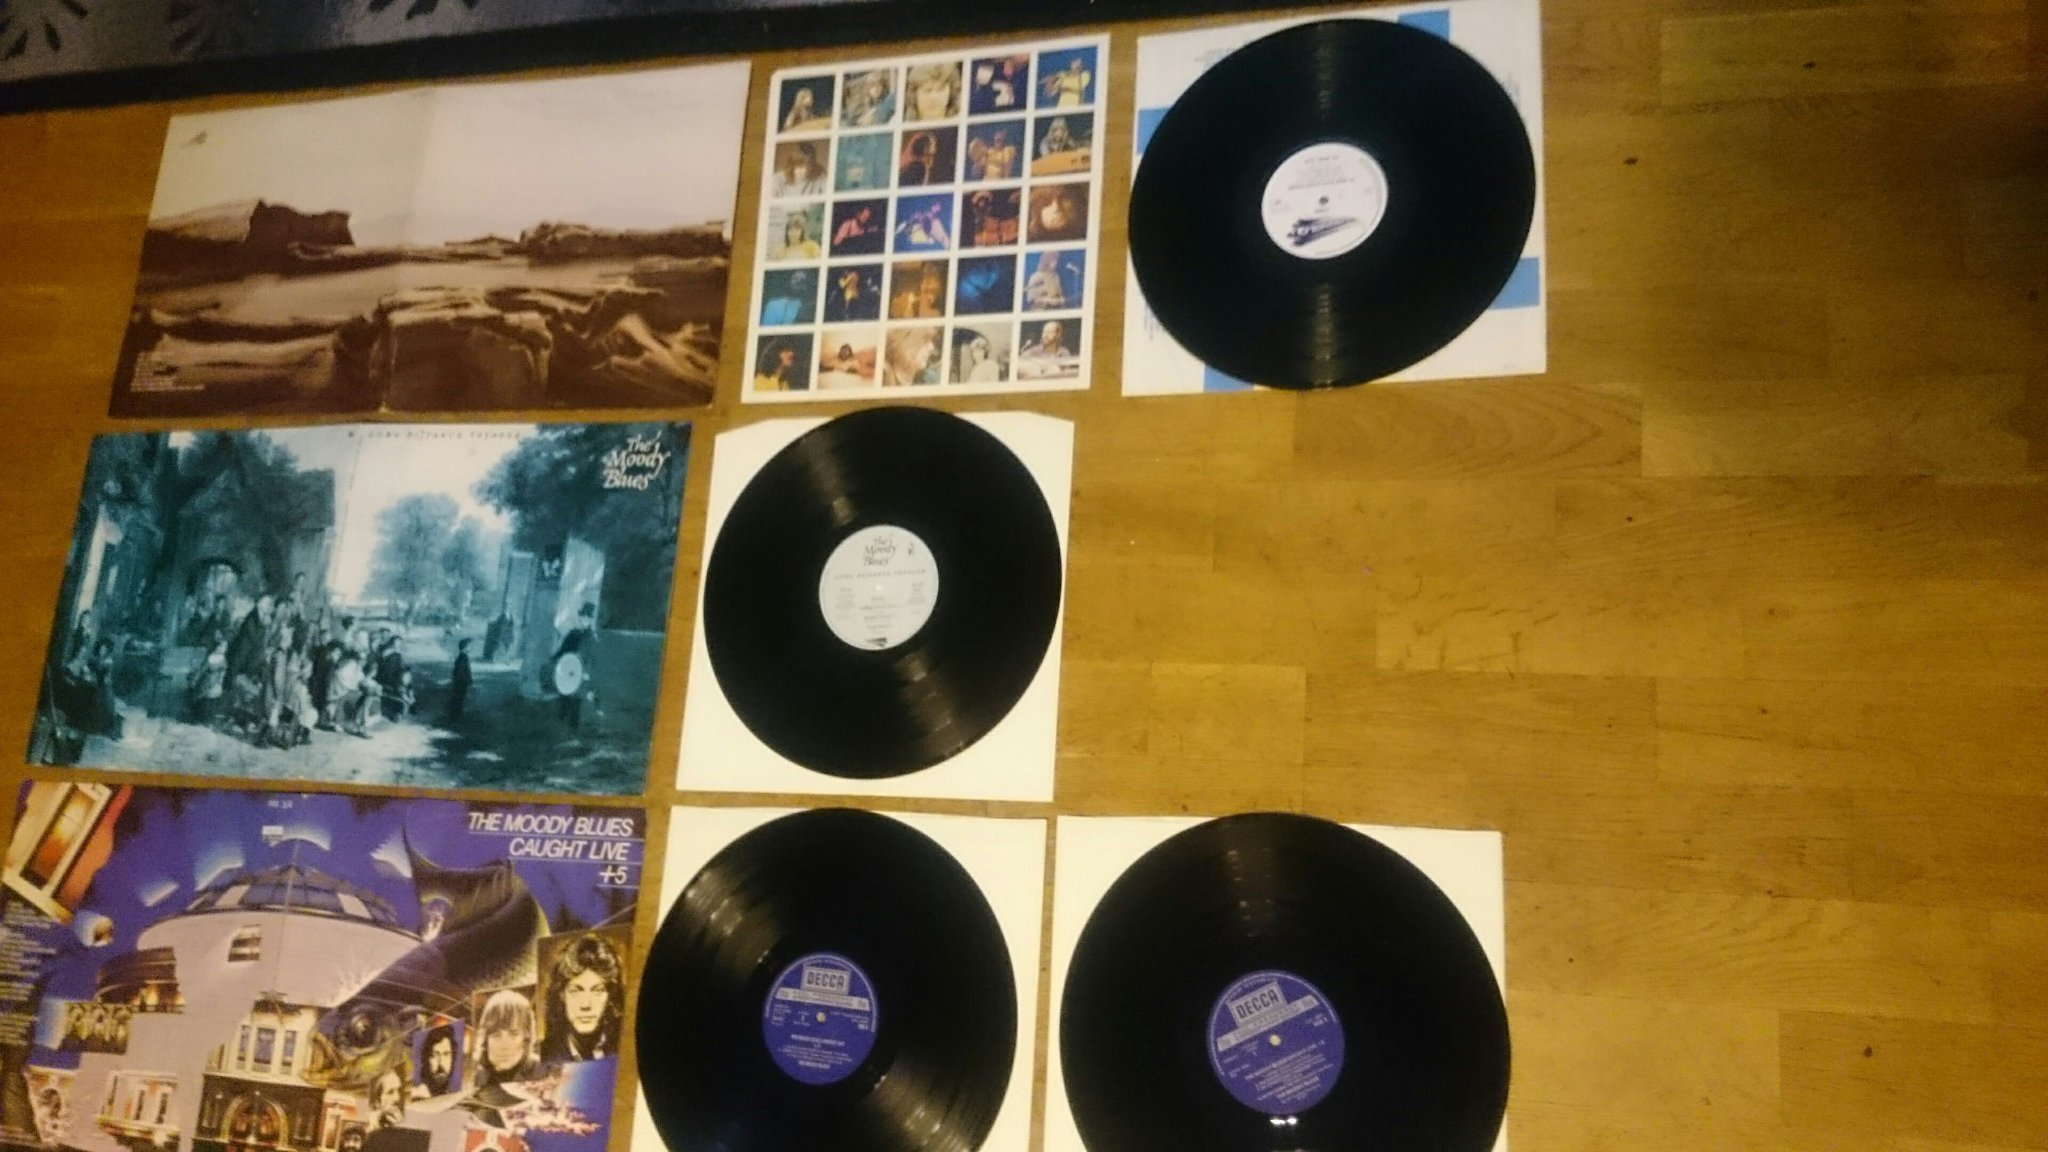 Moody Blues - Seventh sojavrn, Long distance voyager, Caught live + 5 dubbel